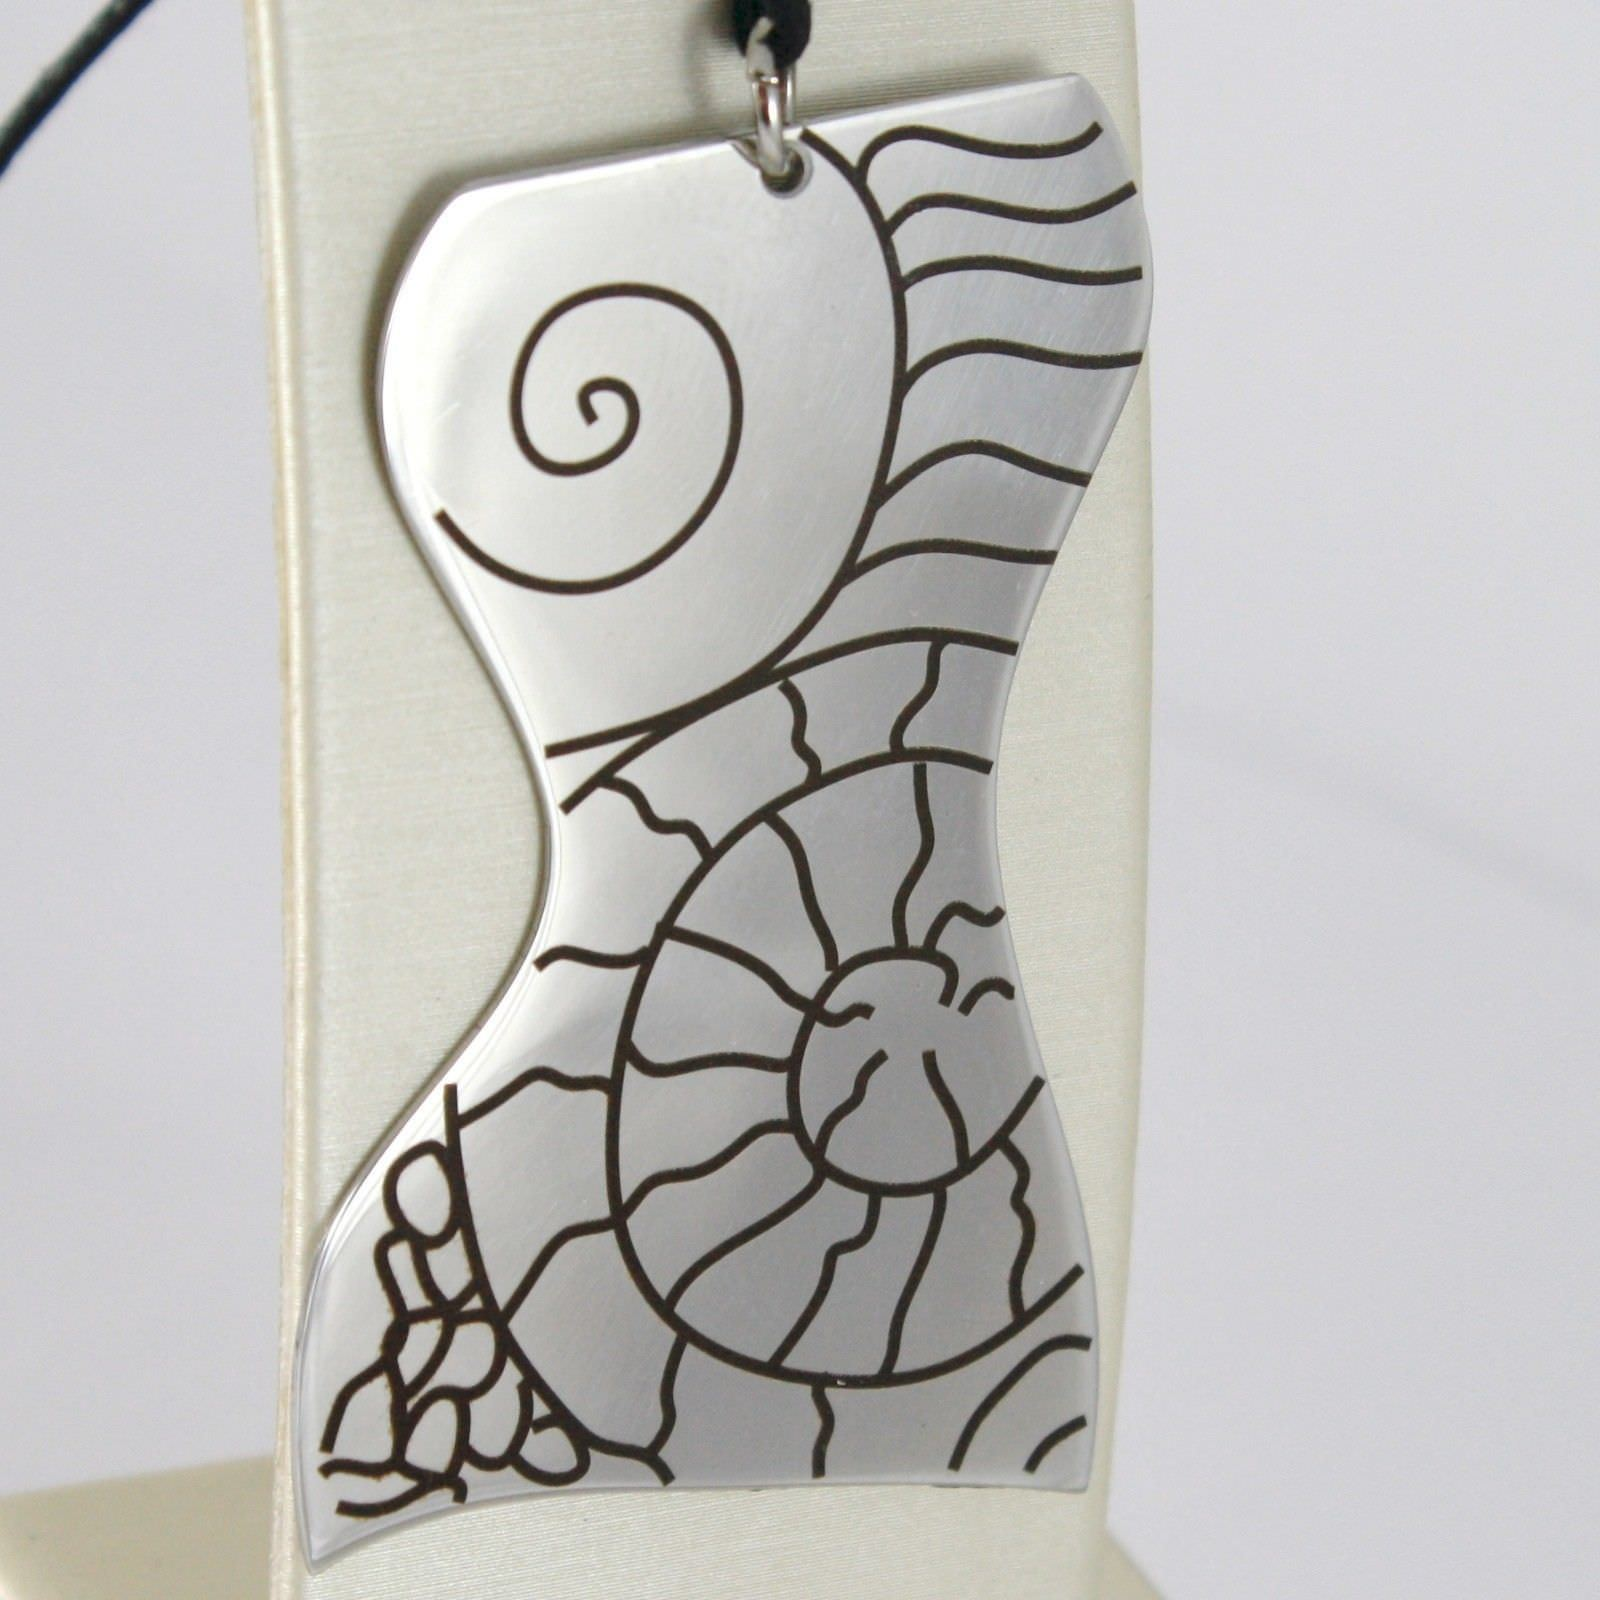 PENDANT STEEL ENGRAVED WITH BUST OF WOMEN'S, SHELL AND SINUOUS LINES